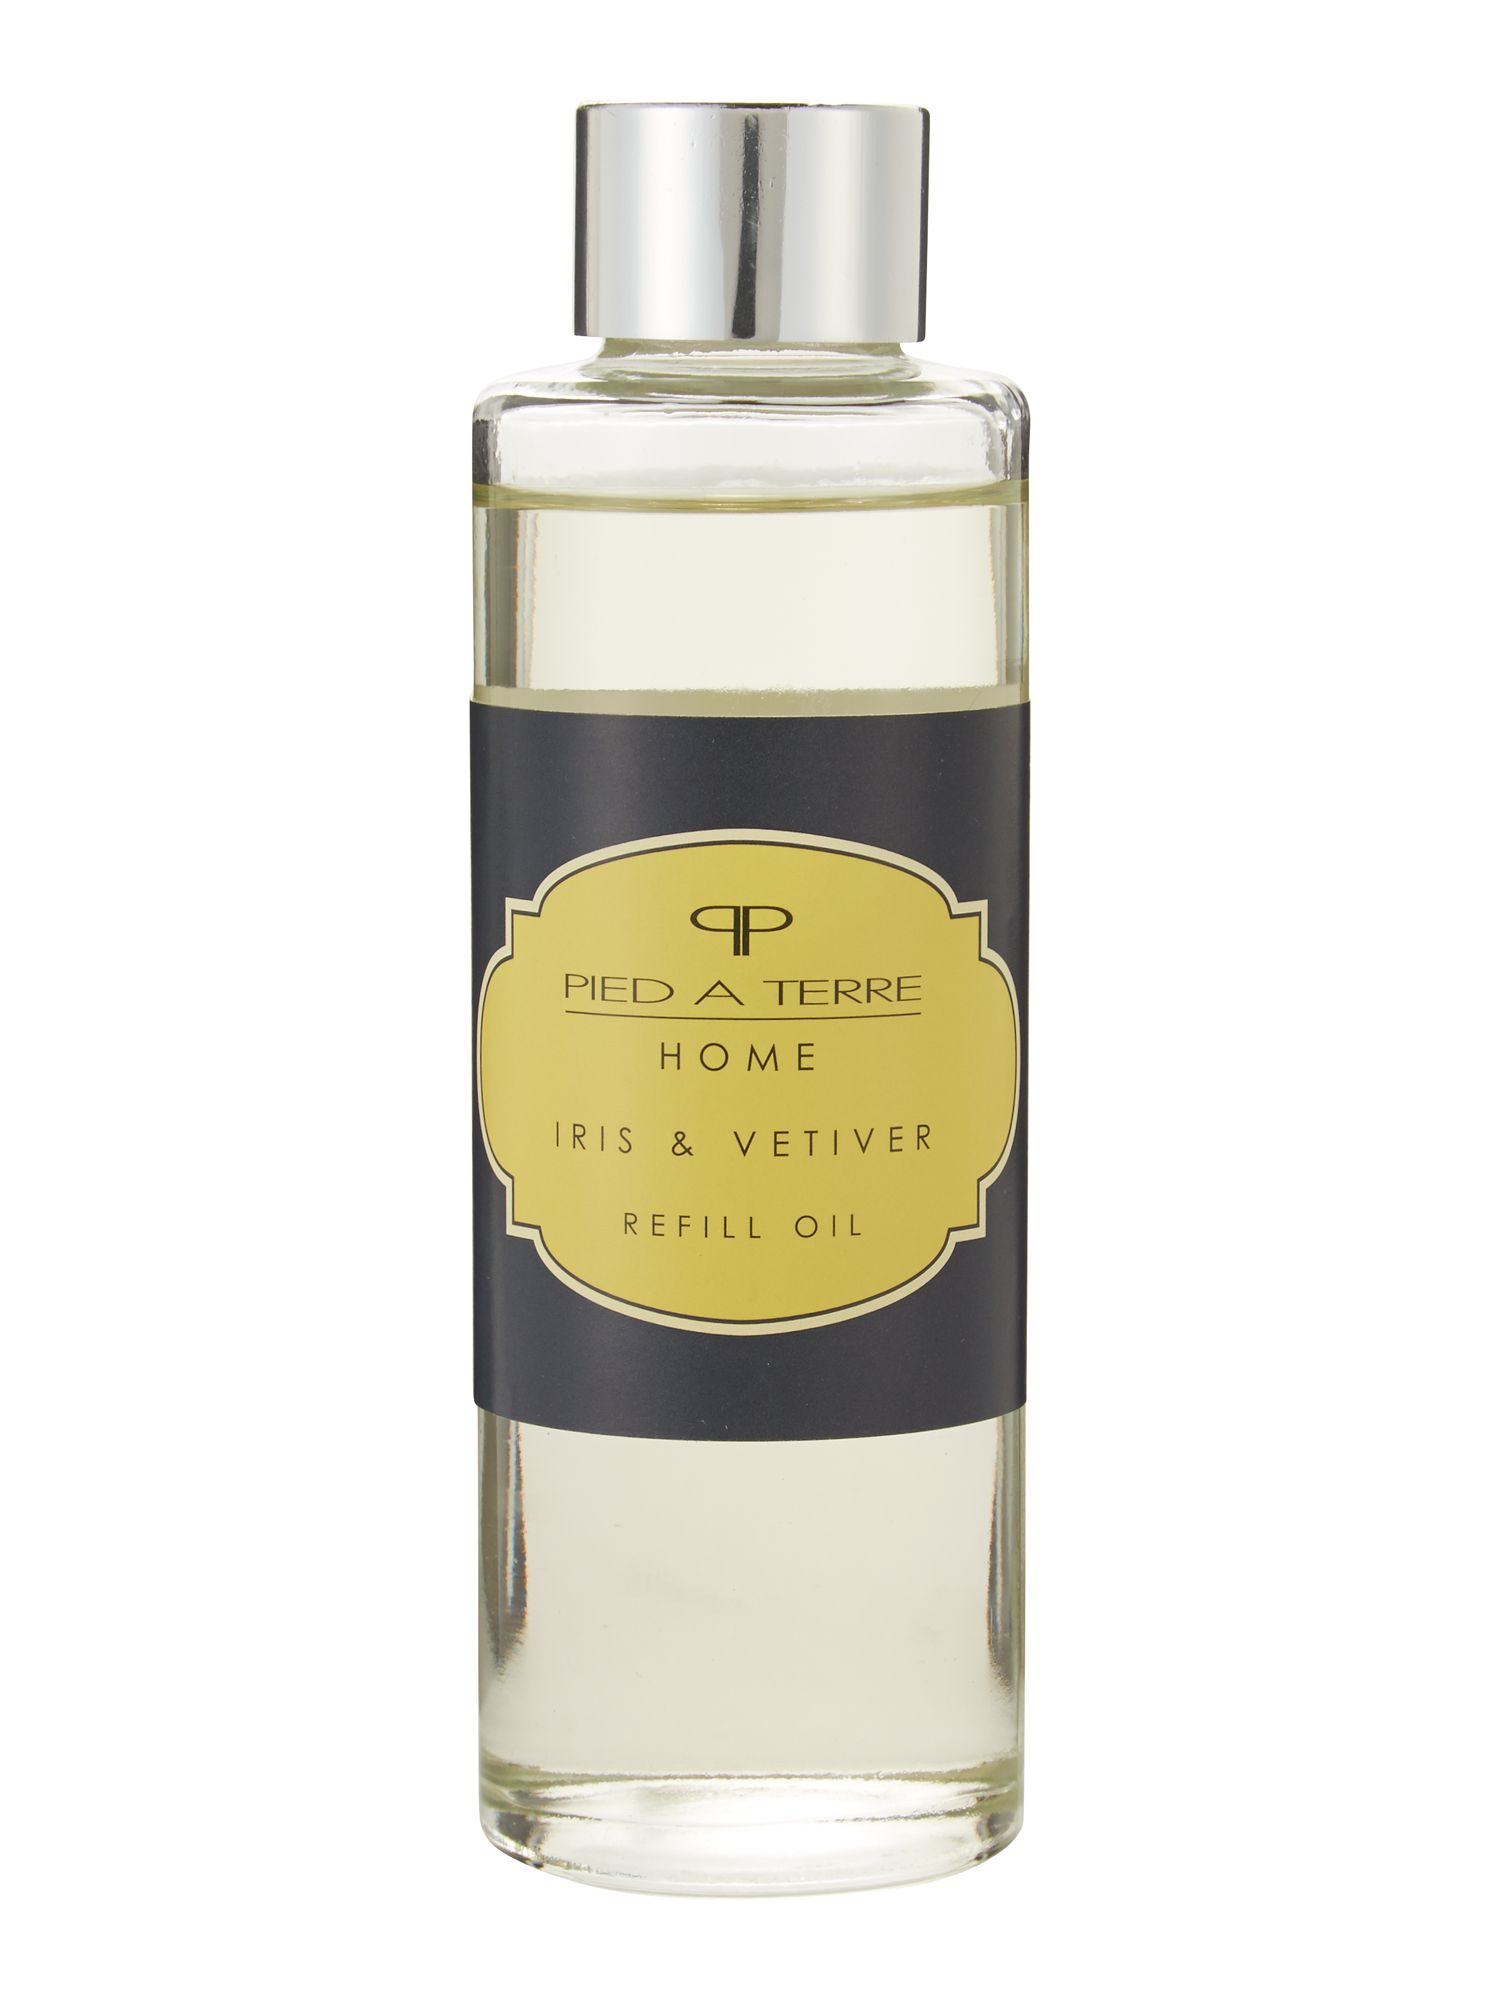 Iris & vetiver refill oil